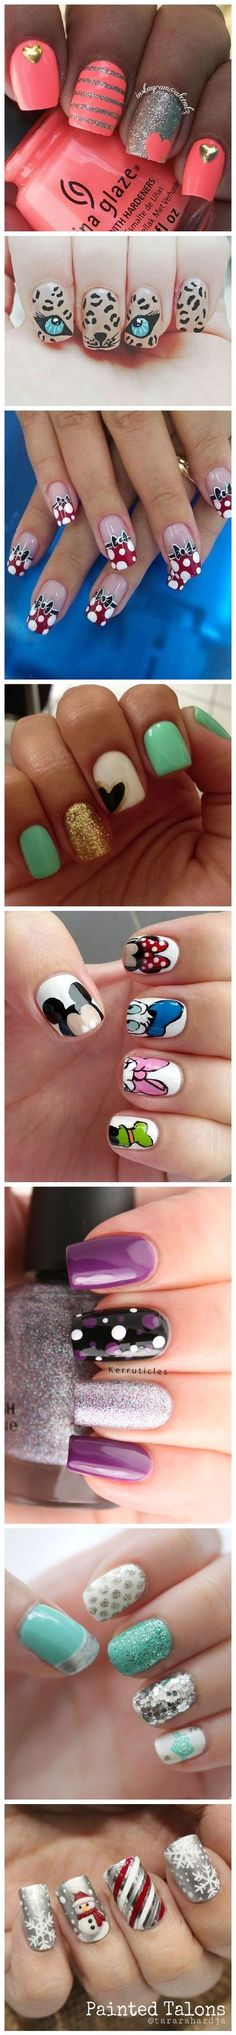 Simple Nail Designs